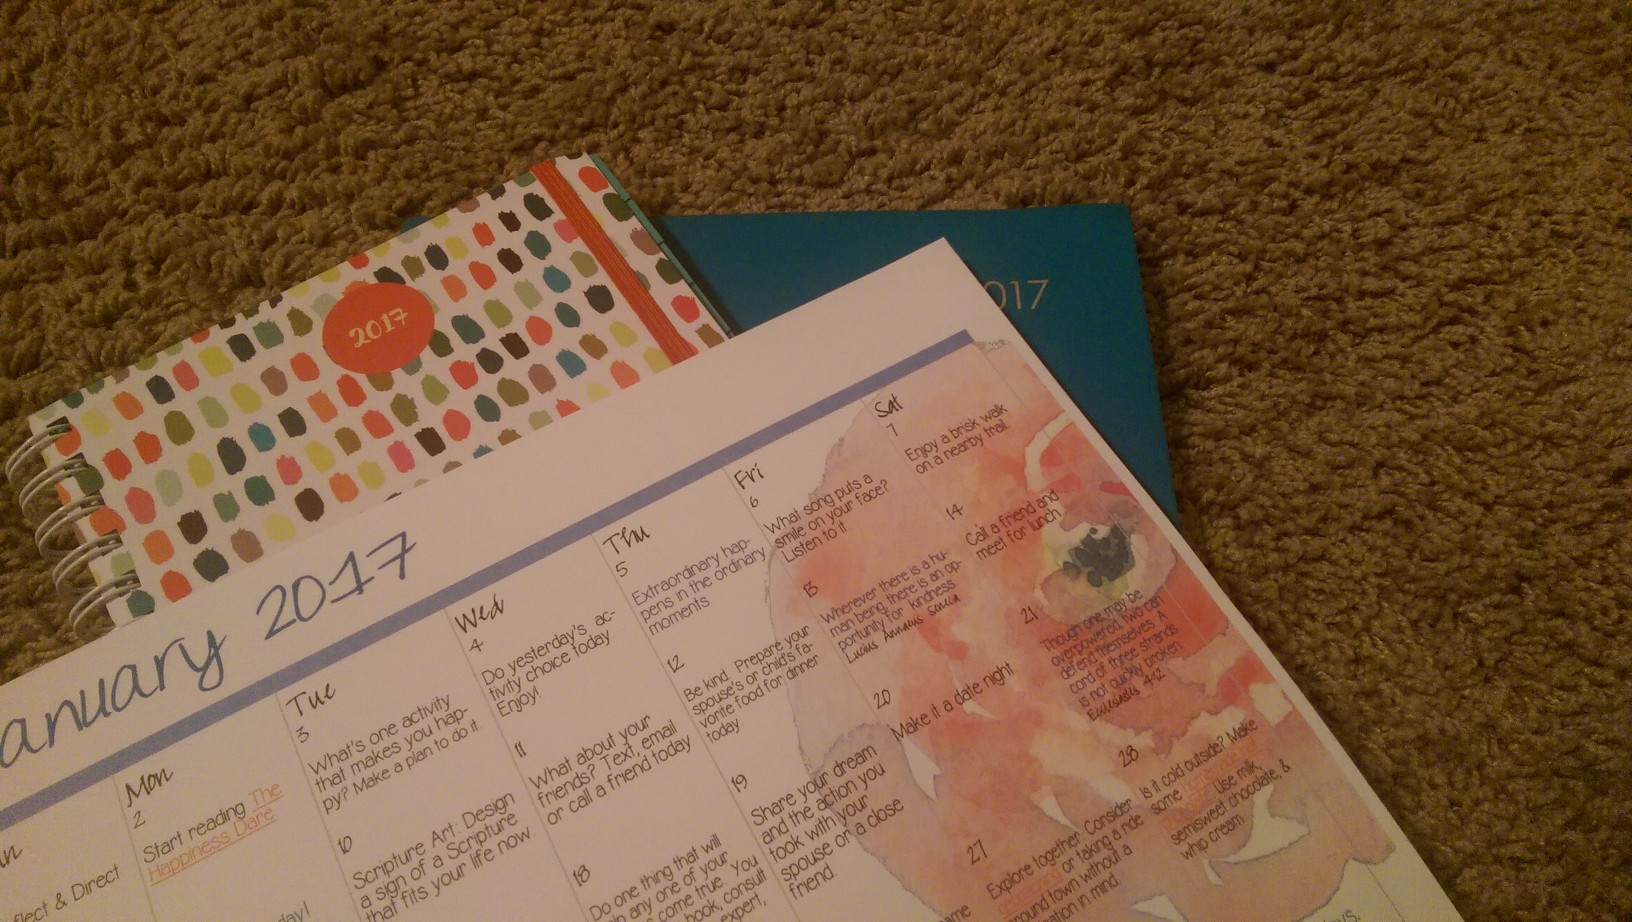 Two planners and the Embrace Your Life calendar